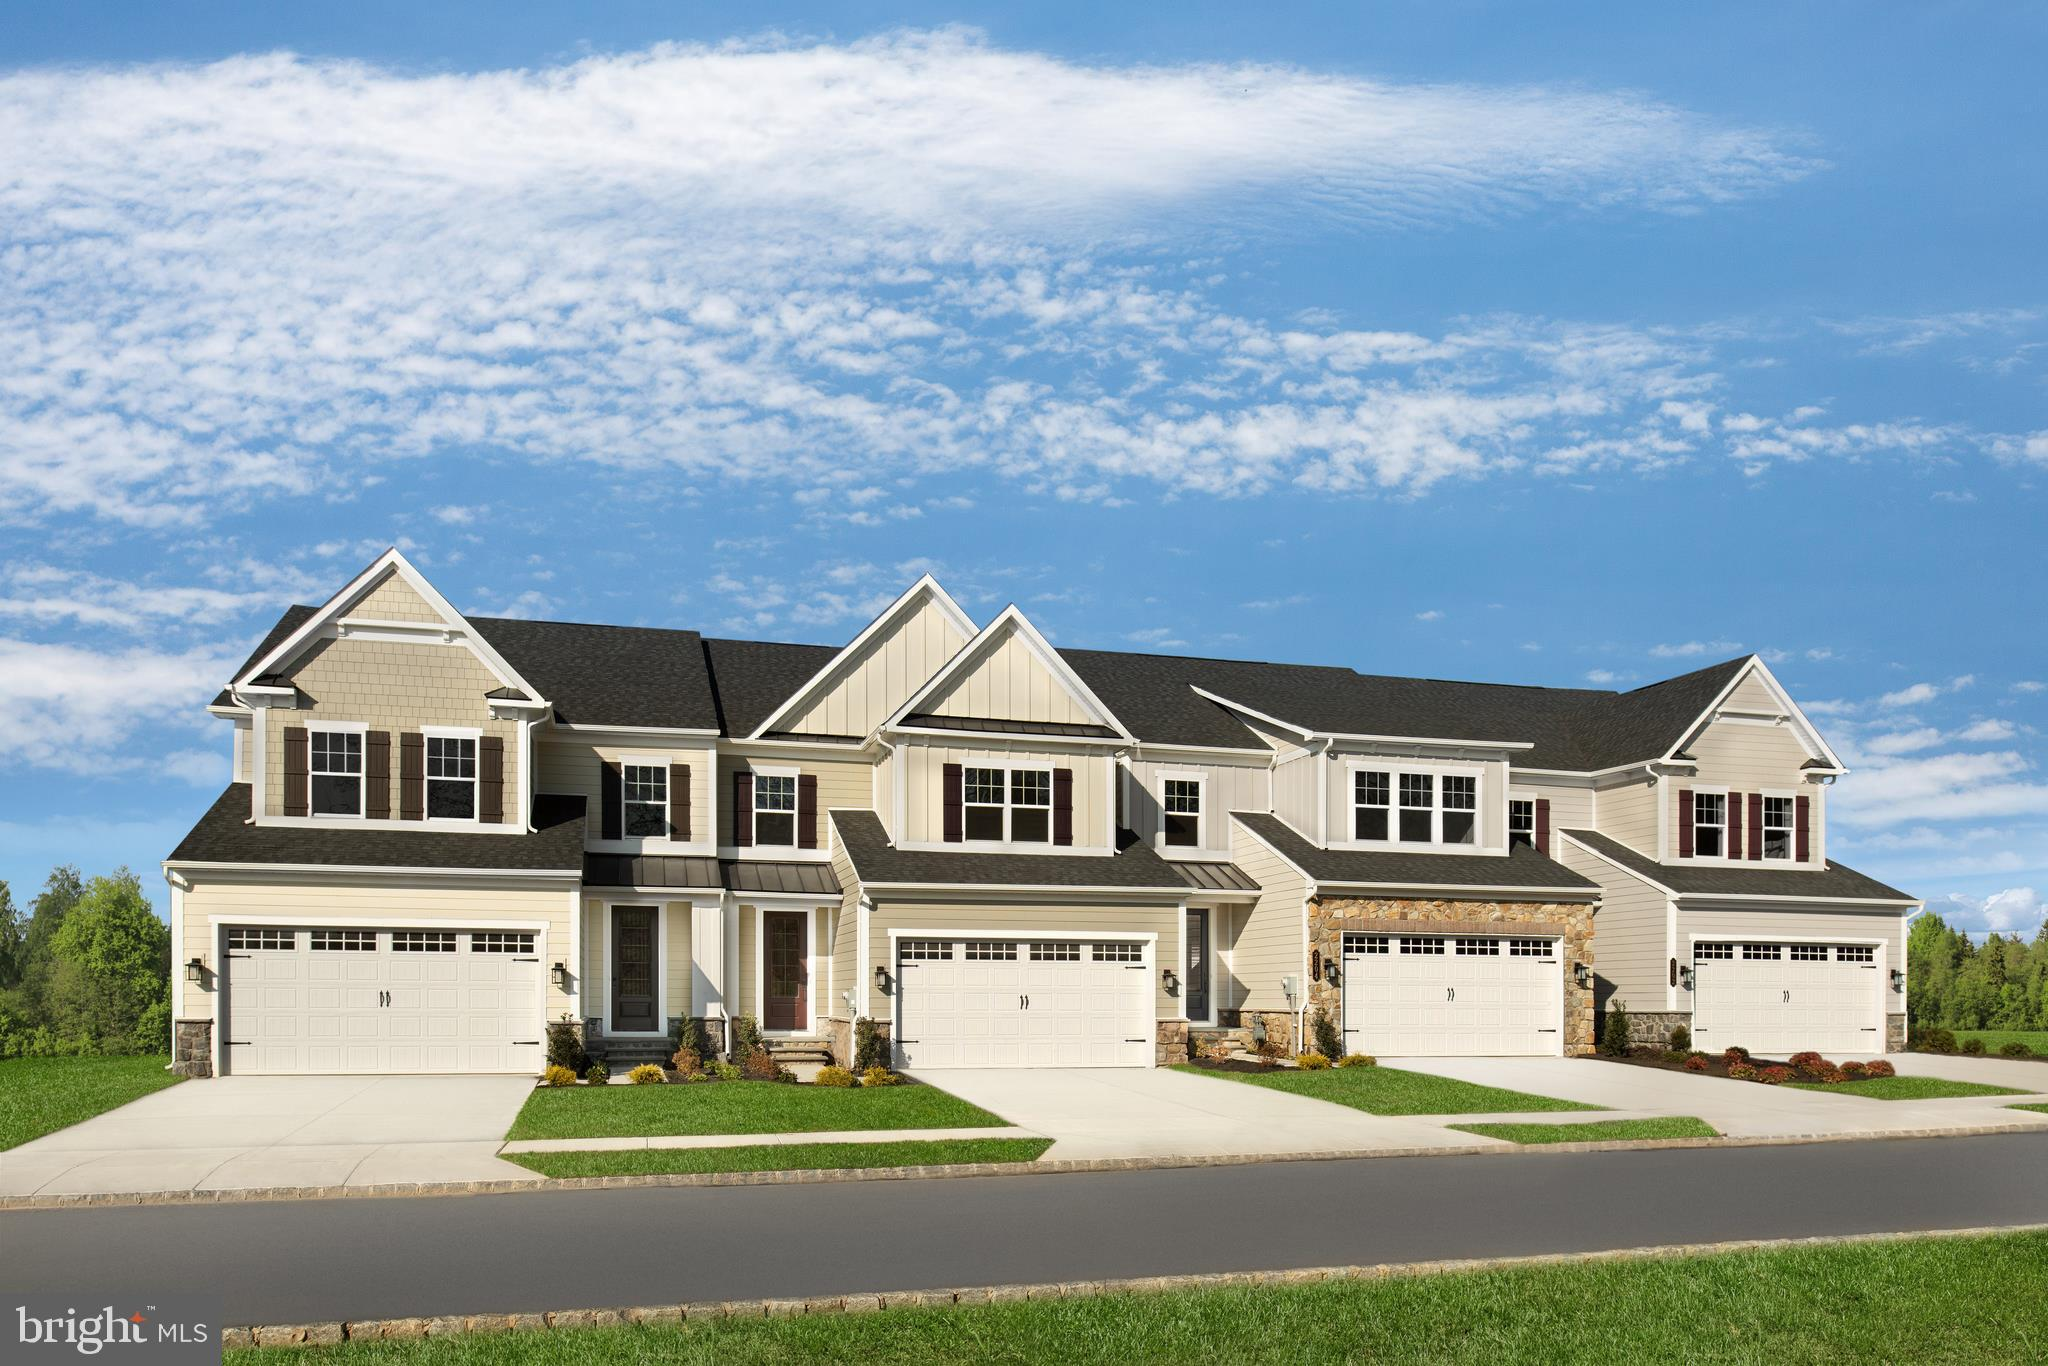 Luxury  townhomes in a spectacular estate setting near Rt. 100, 202, the 322 bypass, and West Chester Borough. You can have the best a single-family home has to offer with  large and inviting spaces, lots of light, plenty of closet space AND have the convenience and practicality of townhome living. NVHomes Northshire makes it easy. Enter to the first level and youll be greeted by the open and airy flex room, perfect for formal dining; or choose the study for work-from-home convenience. The kitchen is open to the great room and a casual dining space. A family arrival center and powder room is tucked away making clutter a thing of the past. Upstairs a loft makes a cozy private gathering space while still leaving plenty of room for large bedrooms, a hall bath and a full laundry room. The owners bedroom is a private retreat and boasts a spa-like owners bath and huge walk-in closet with mirror. To top it off, your included finished basement and full bath offers even more space and versatility for entertaining, fitness or relaxation. Youre going to love the Northshire at Greystone!